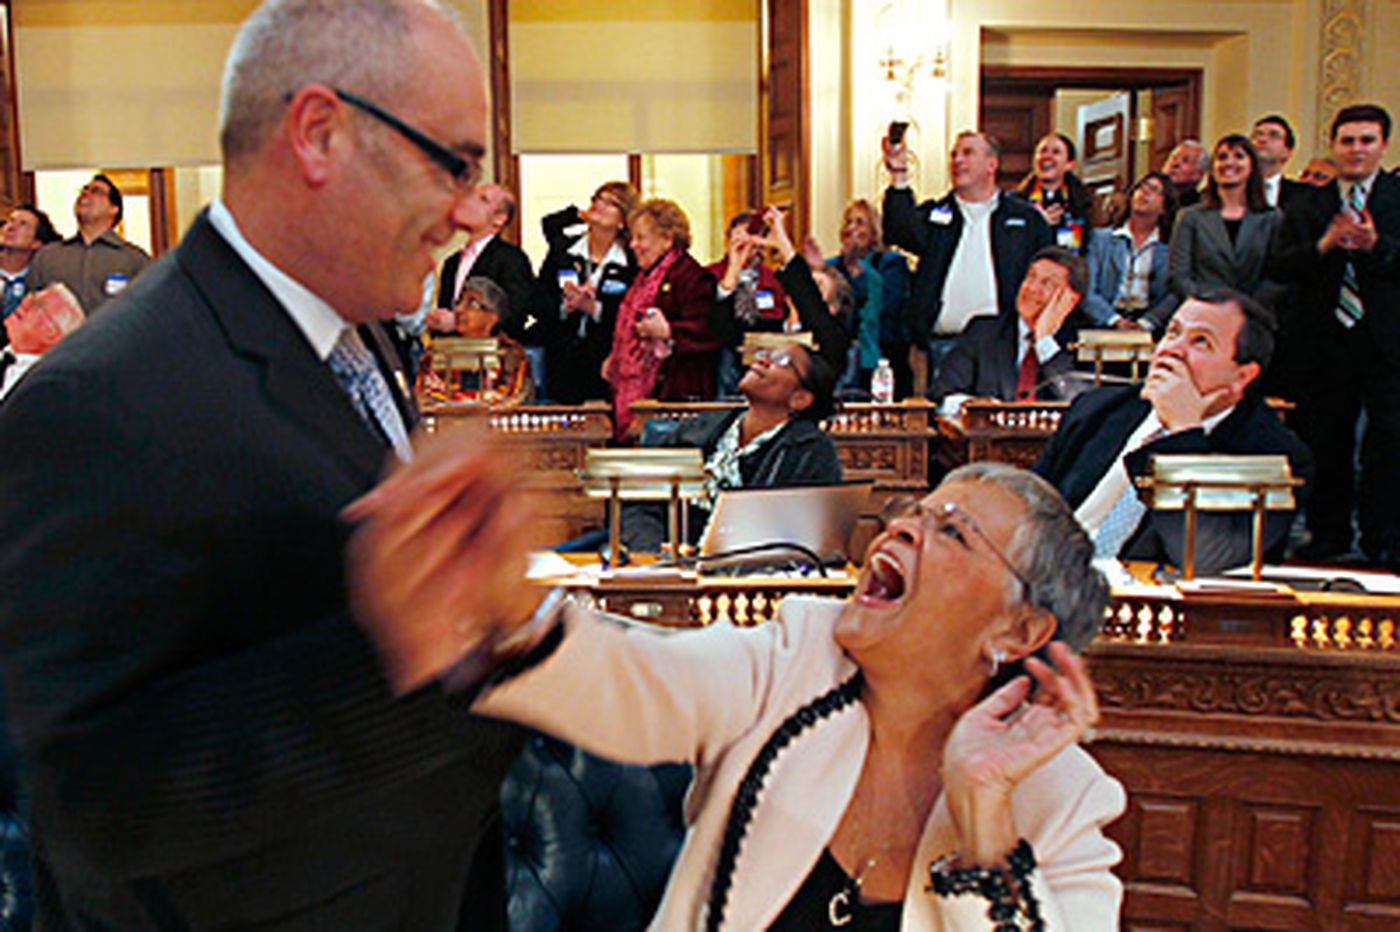 N.J. Assembly approves gay marriage; Christie vows veto